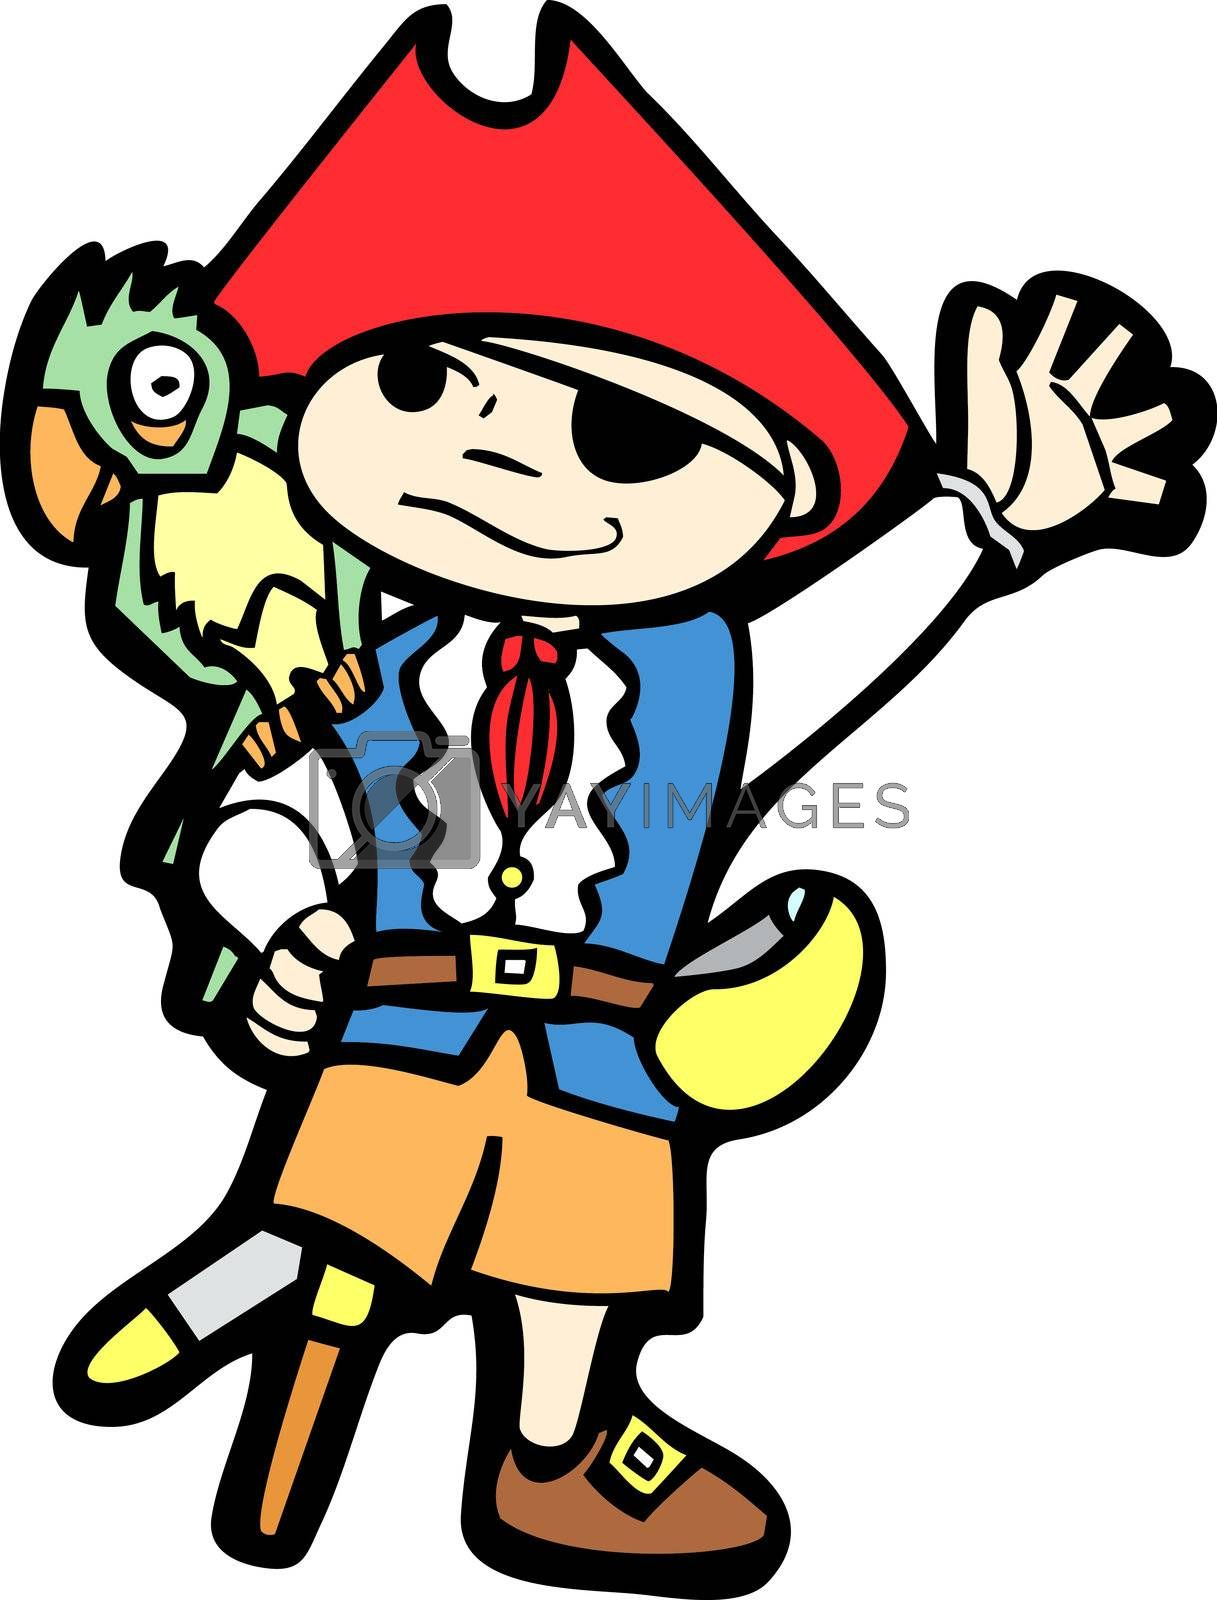 Boy in a pirate costume with peg leg and parrot.